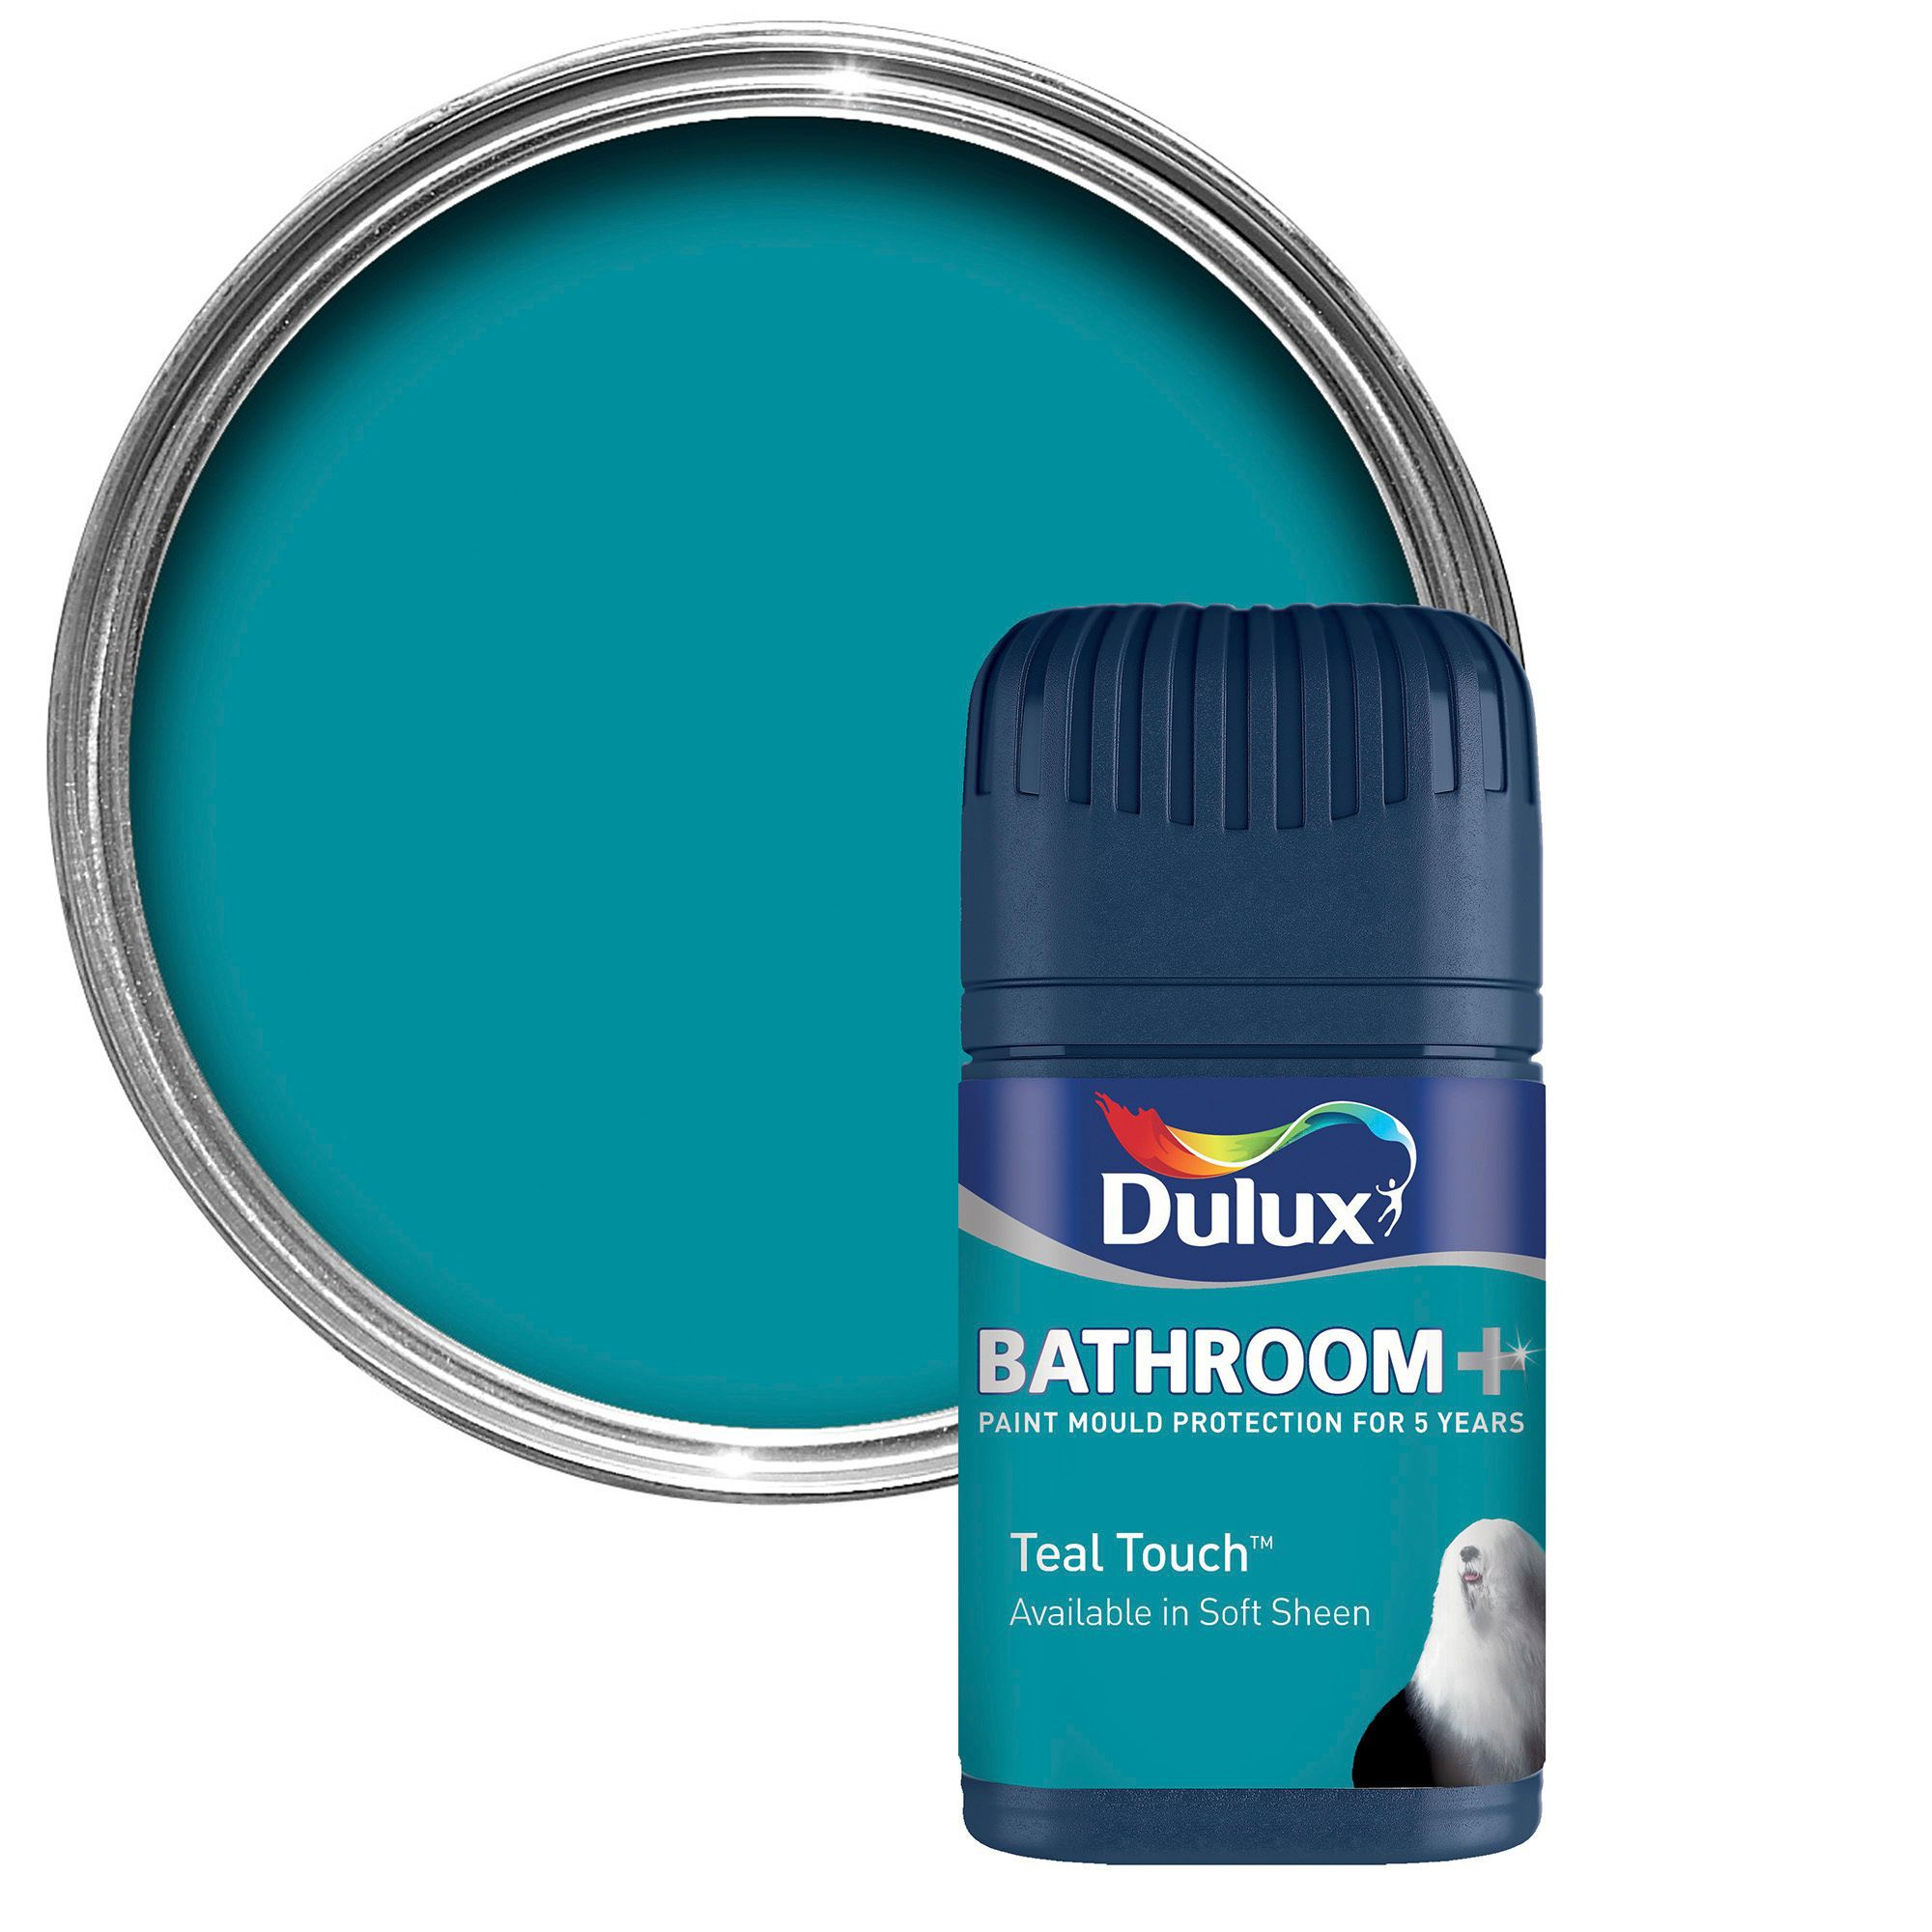 White Bathroom Paint Dulux dulux bathroom teal touch soft sheen emulsion paint 50ml tester